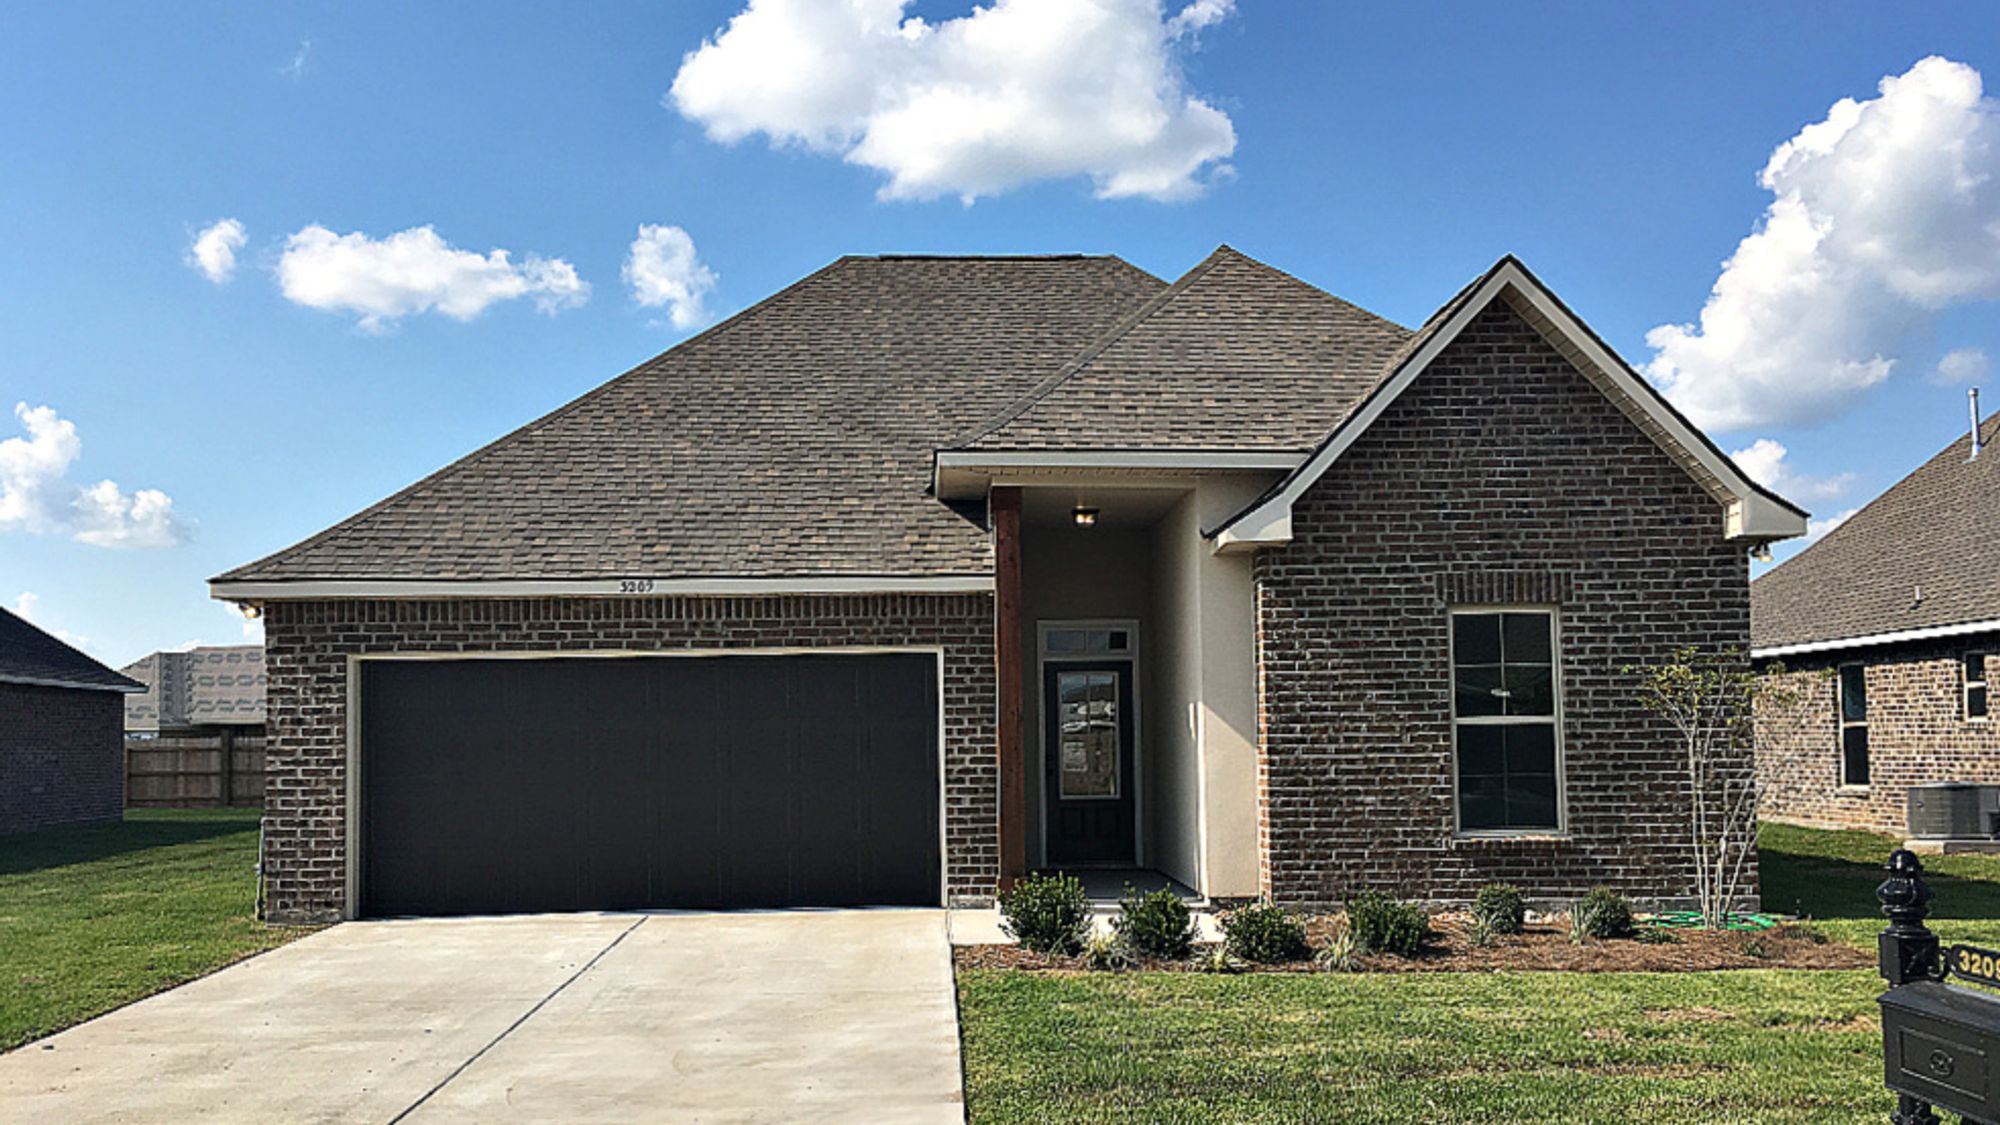 Front View - The Cove at Morganfield Community - DSLD Homes Lake Charles